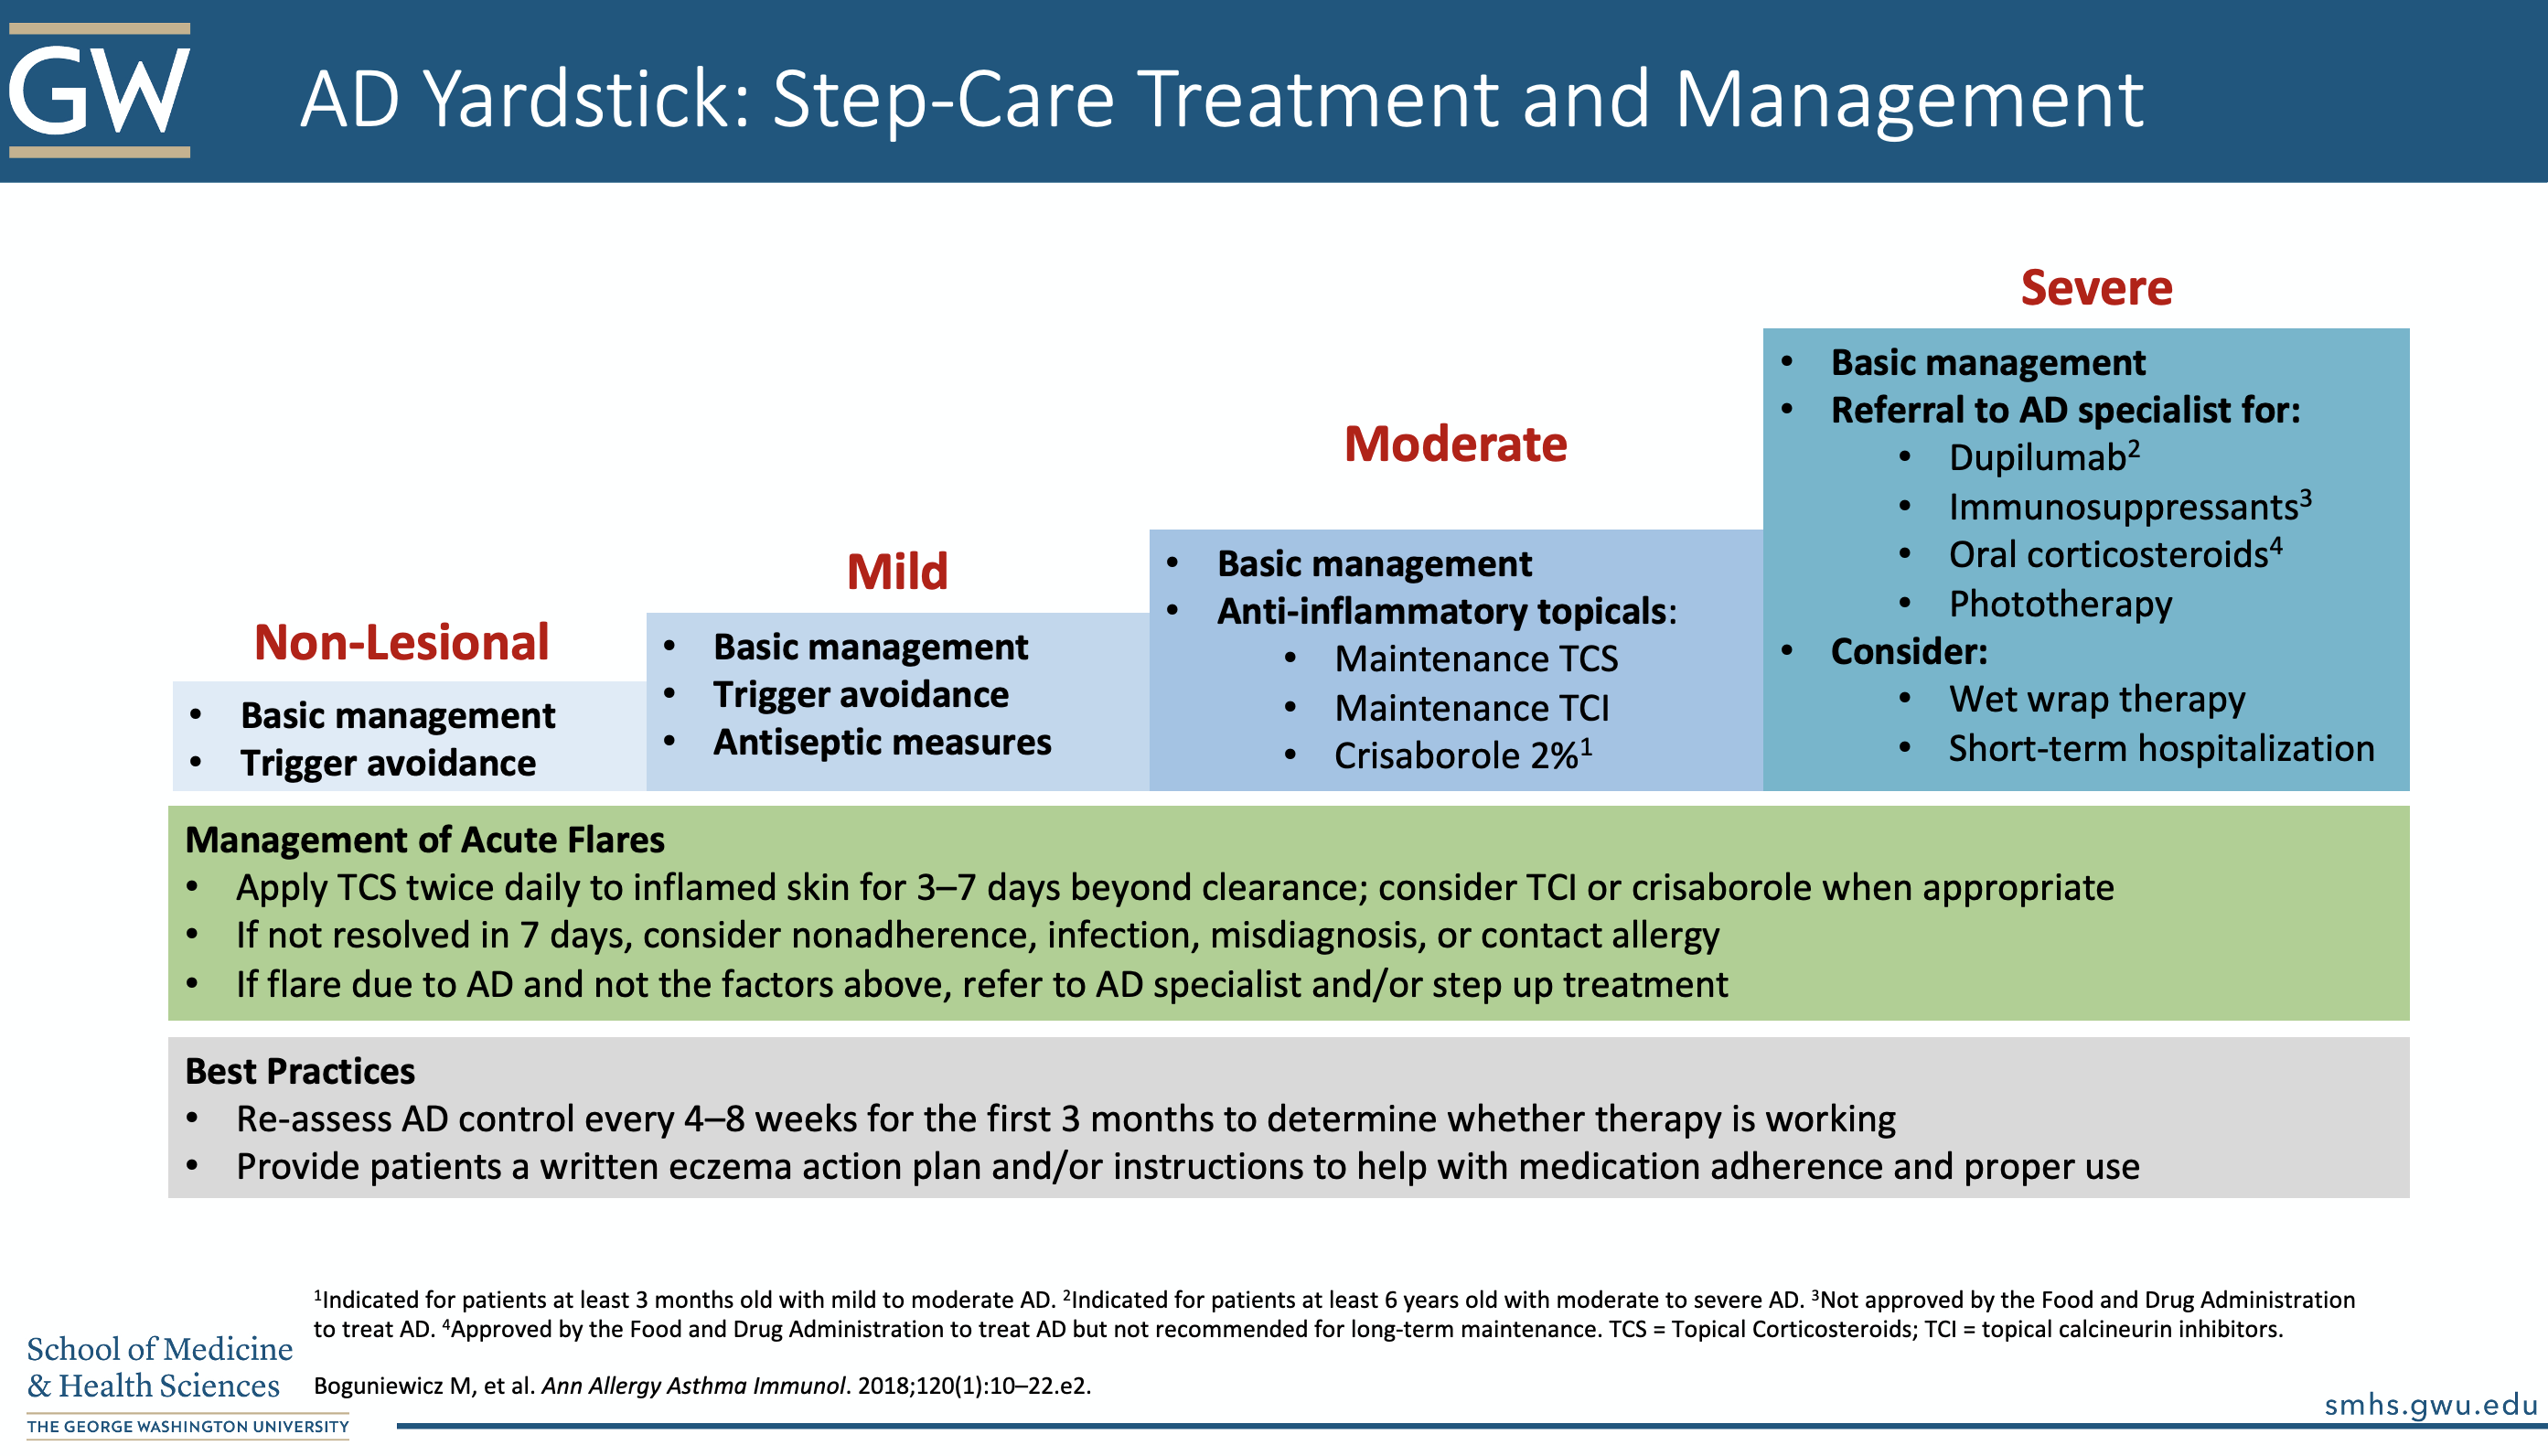 Step-Care Treatment and Management for Atopic Dermatitis